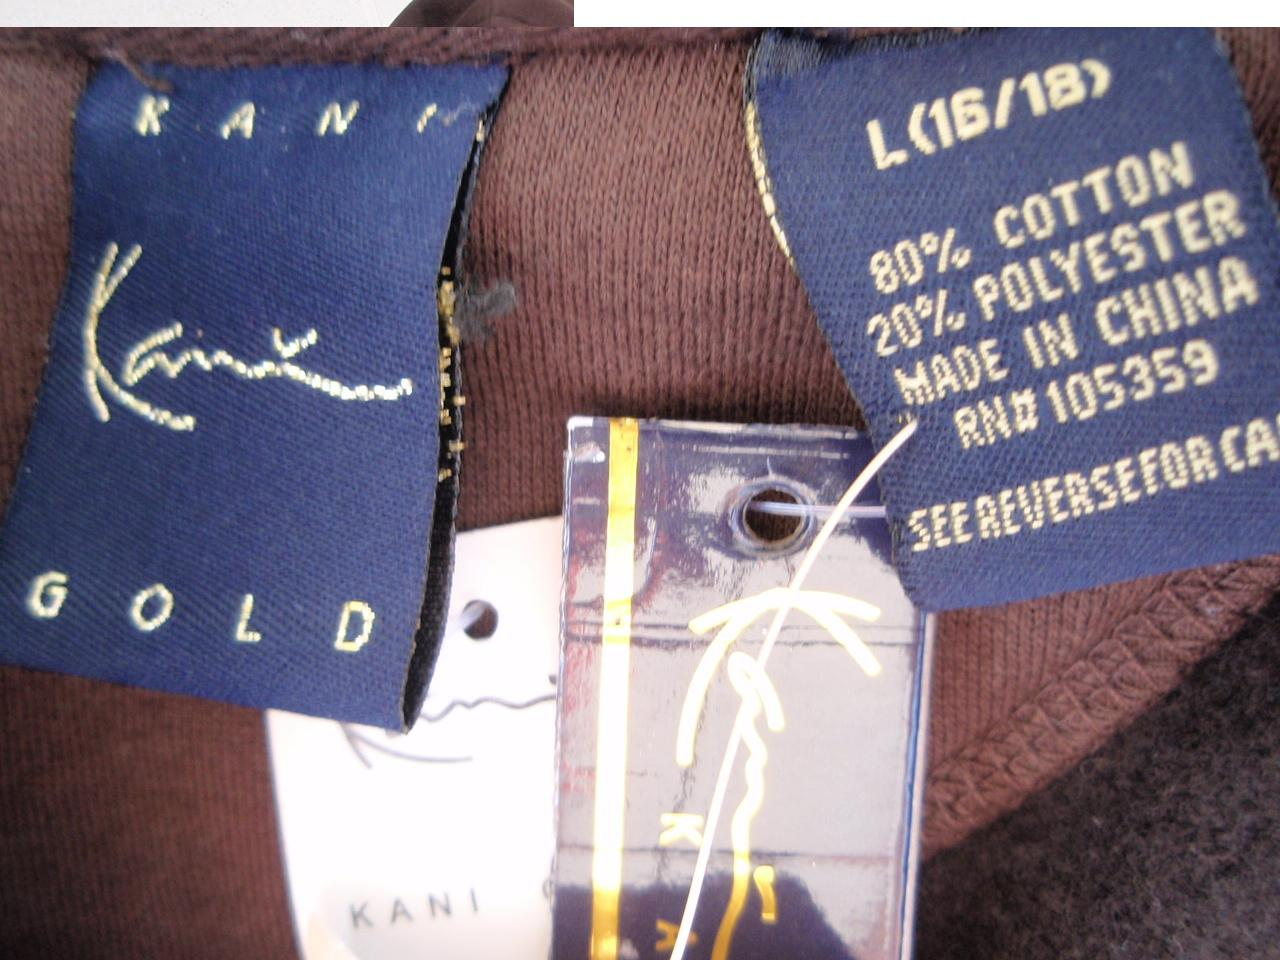 Recalled Kani Gold jacket label